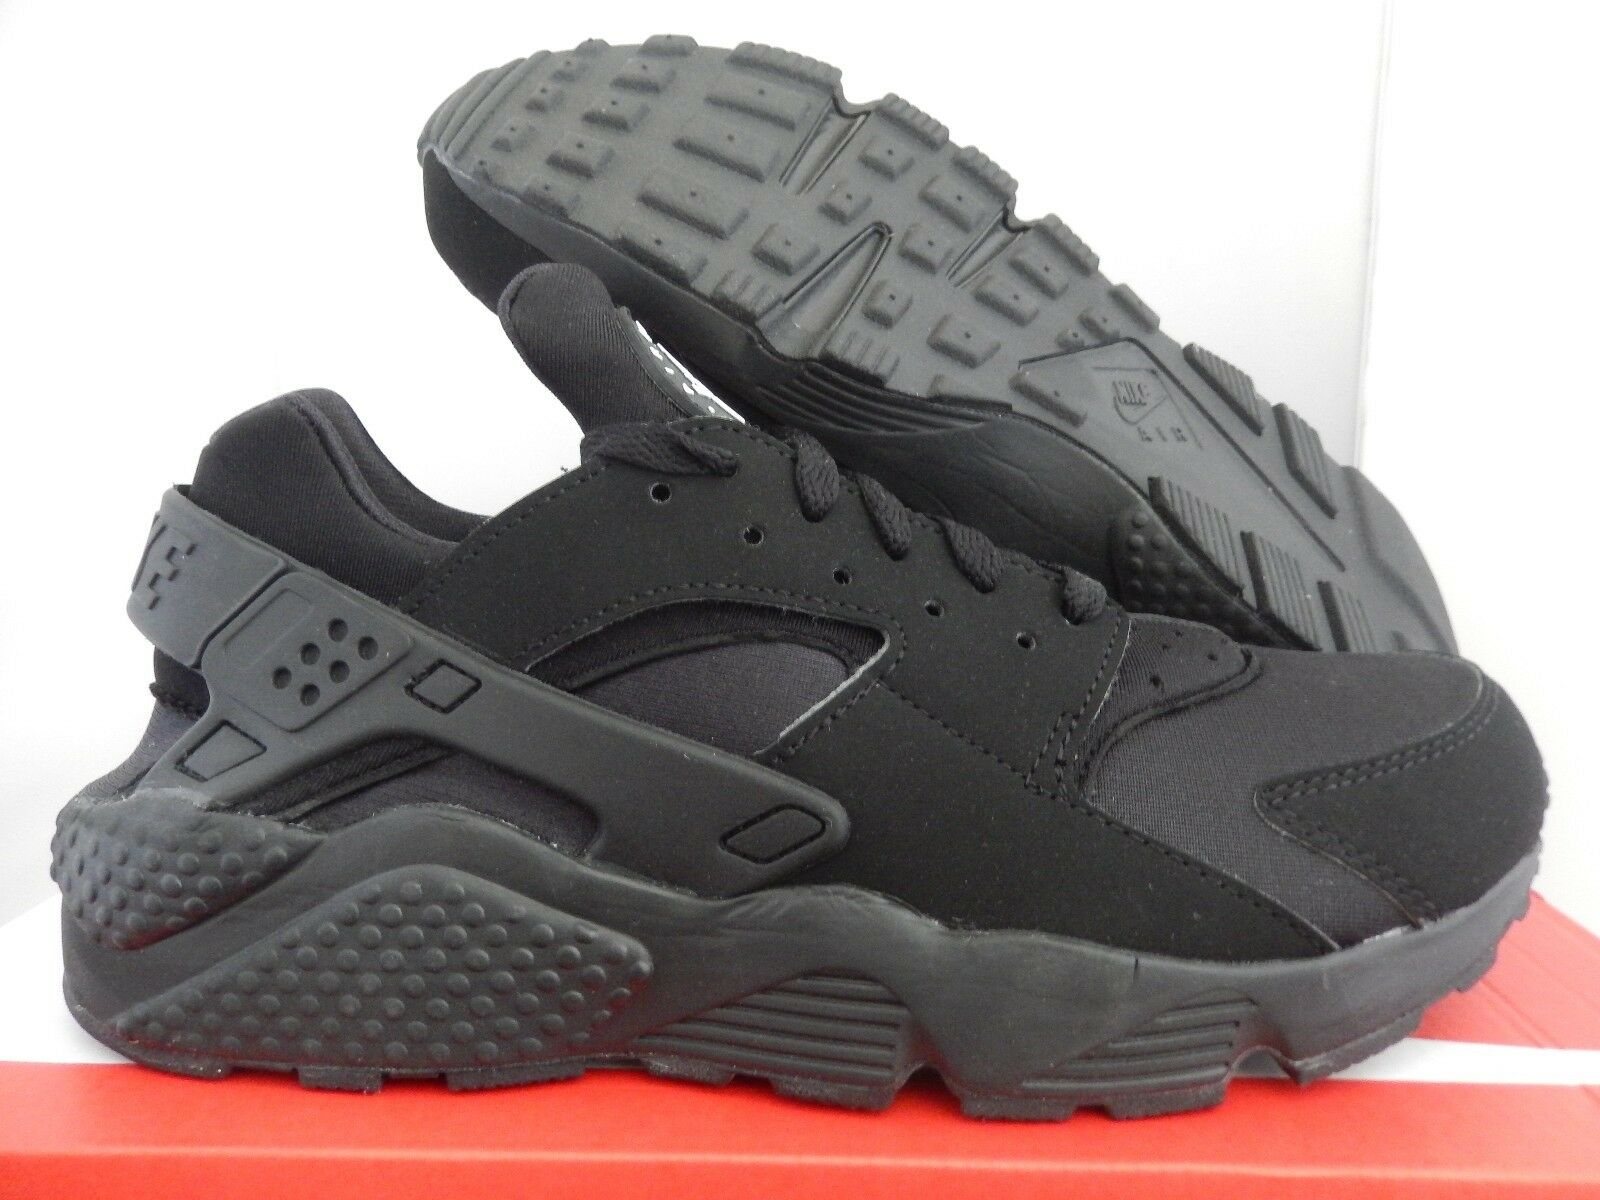 NIKE AIR HUARACHE BLACK-BLACK-WHITE SZ 9 [318429-003]